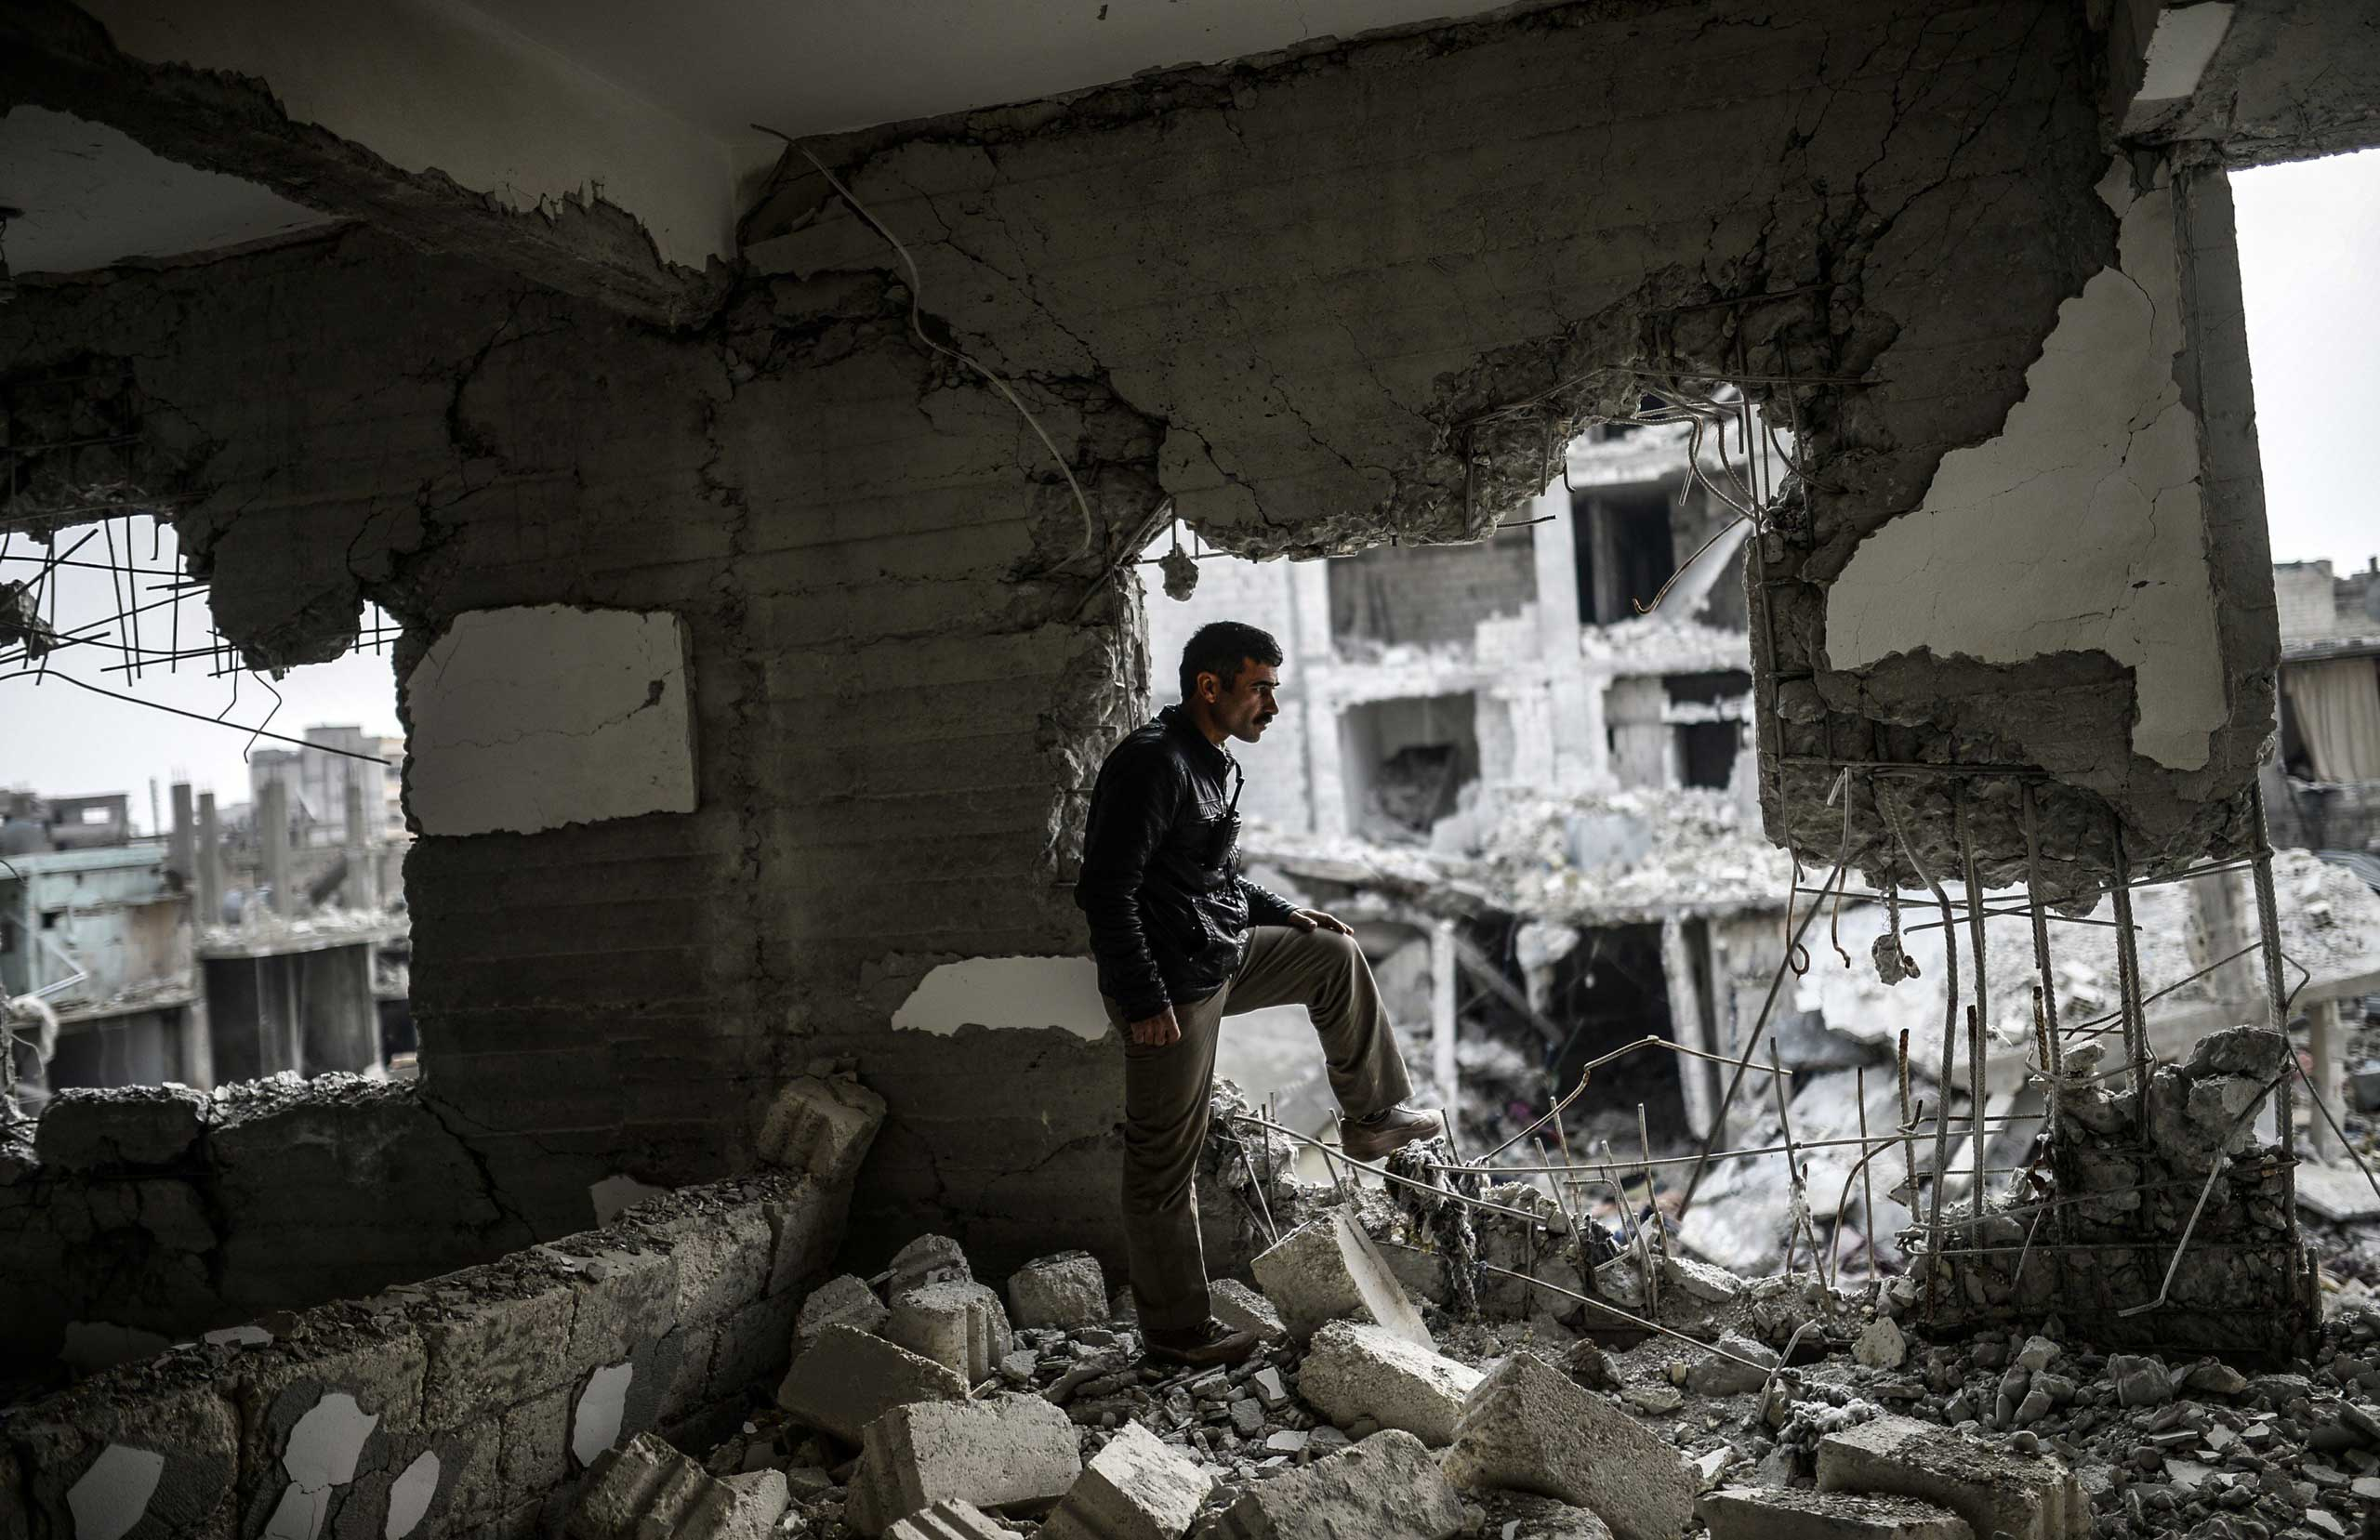 A Kurdish man stands in a destroyed building in the center of the Syrian border town of Kobani on Jan. 28, 2015.